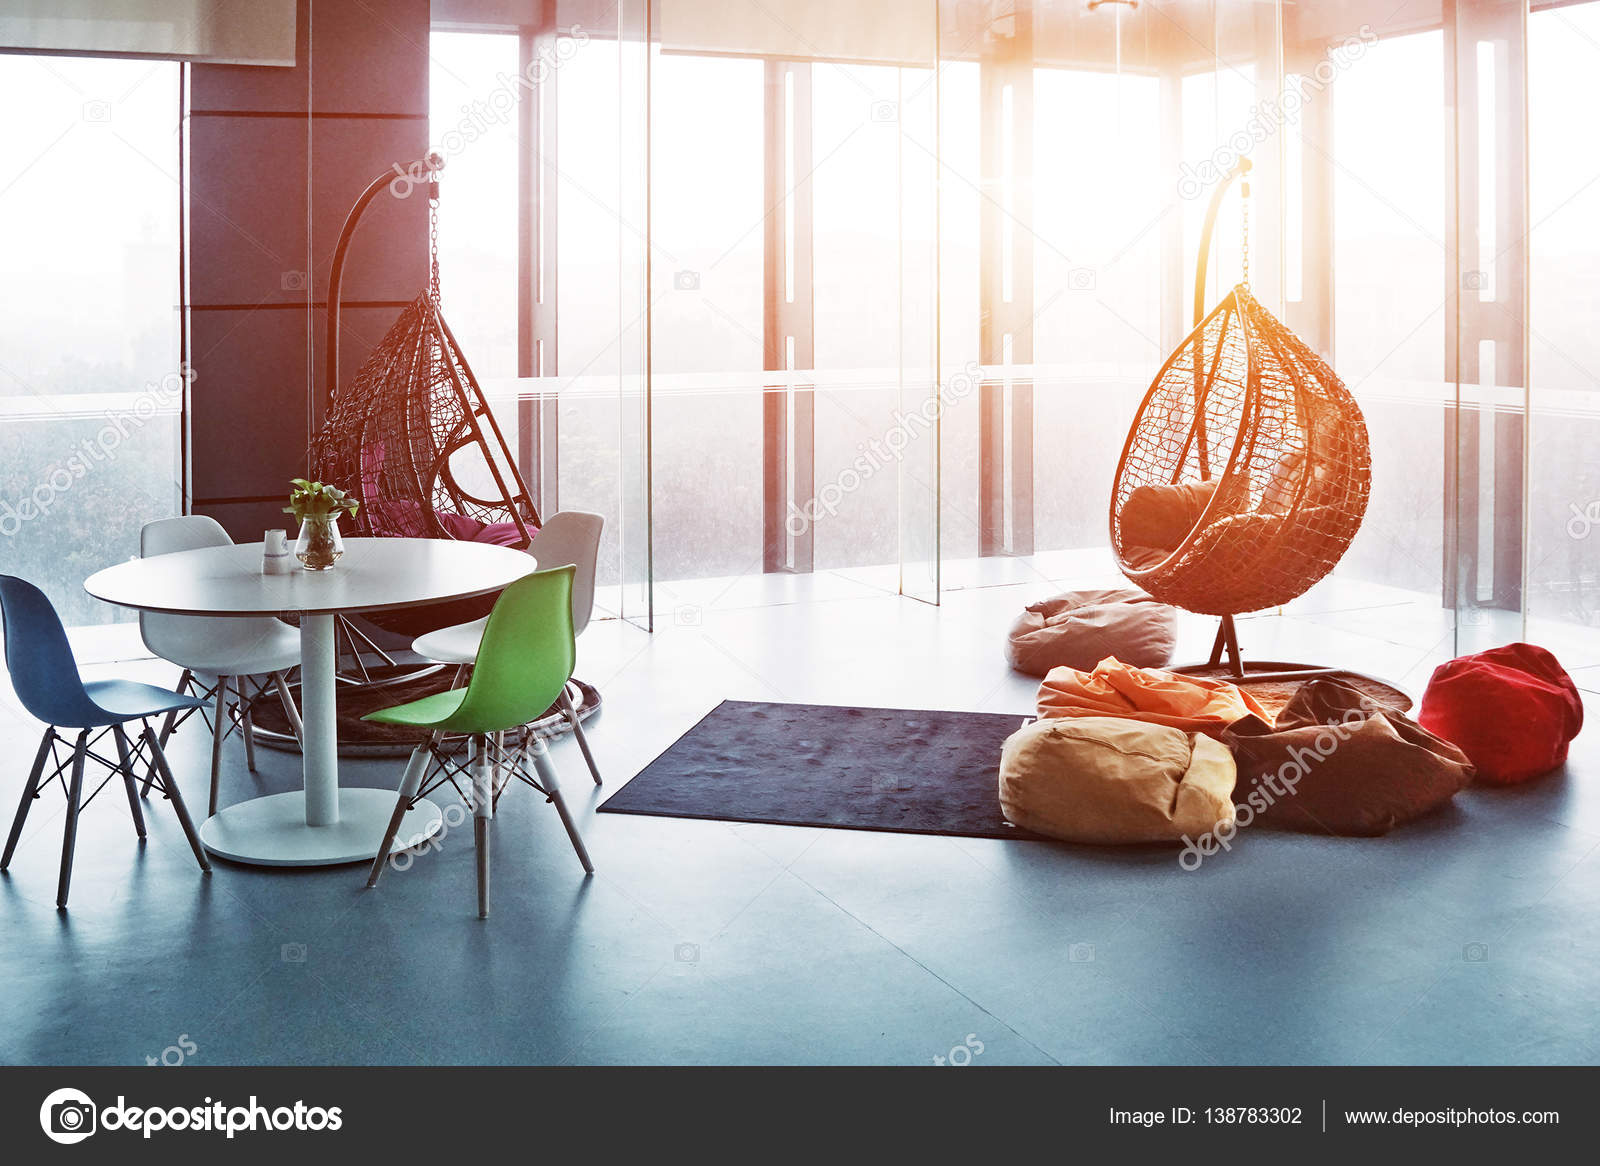 Unusual Living Room Furniture Interior Of Living Room With Unusual Furniture Stock Photo